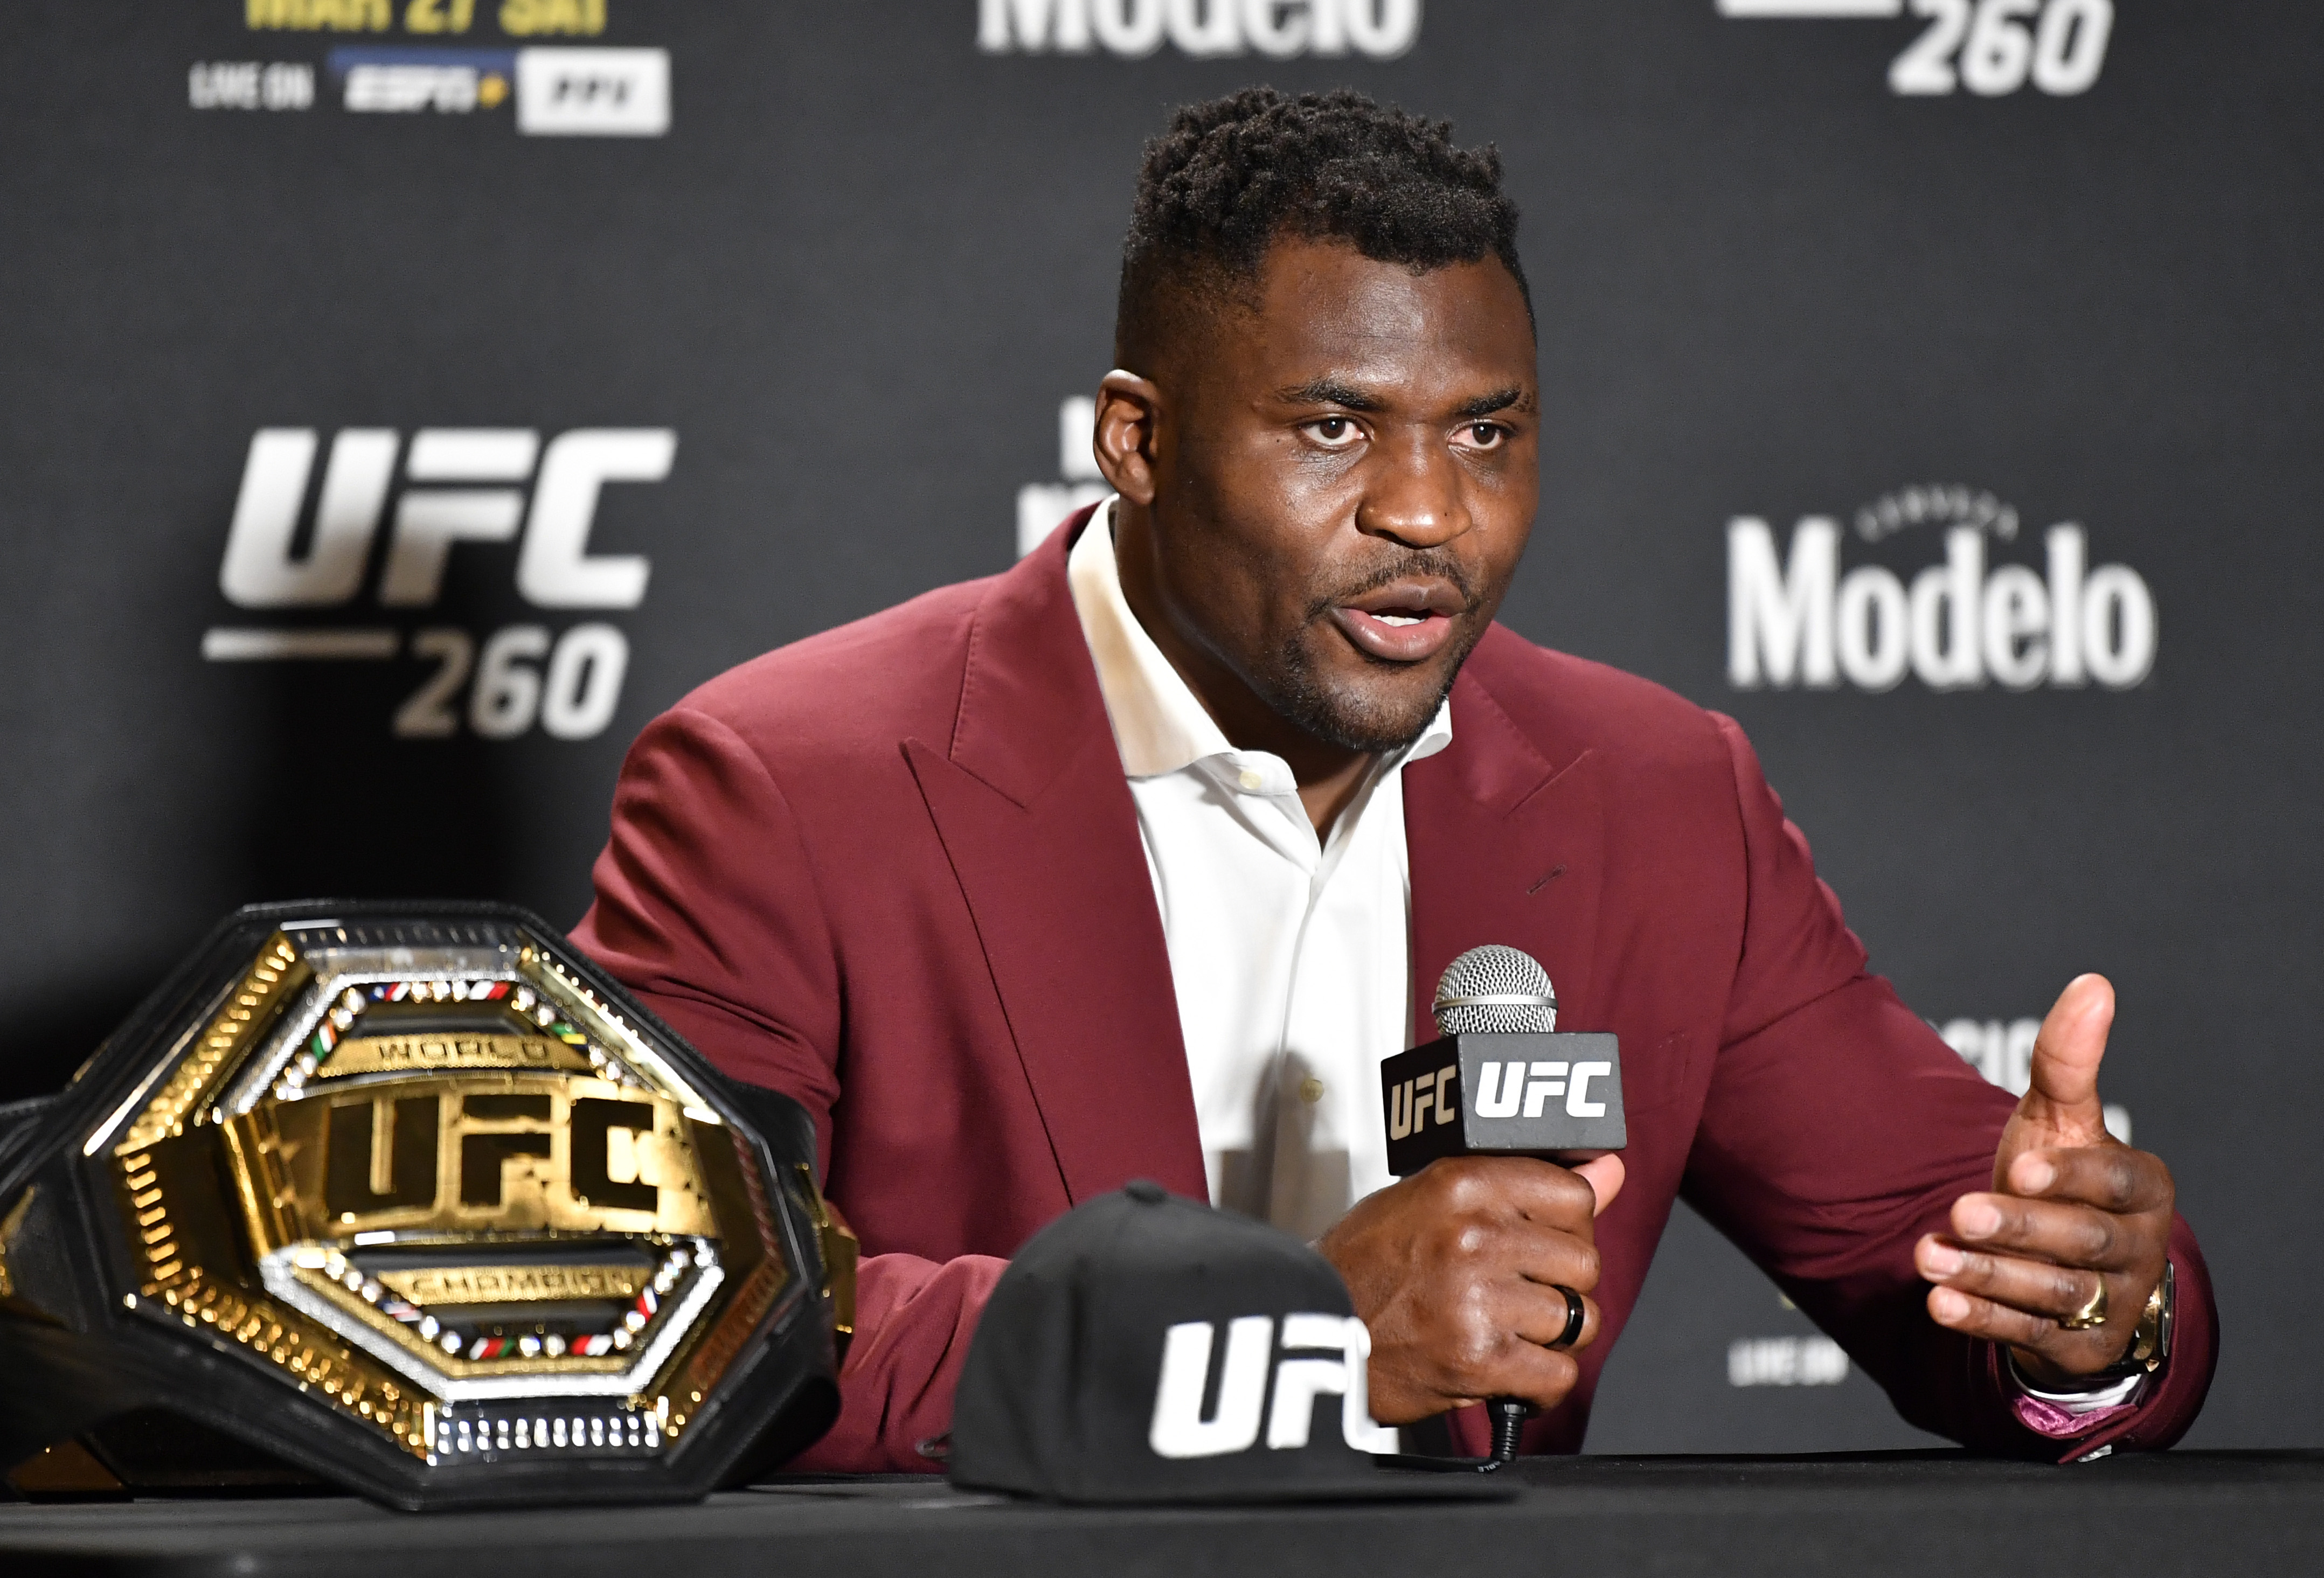 The UFC has created an interim heavyweight title because Francis Ngannou could not fight in August